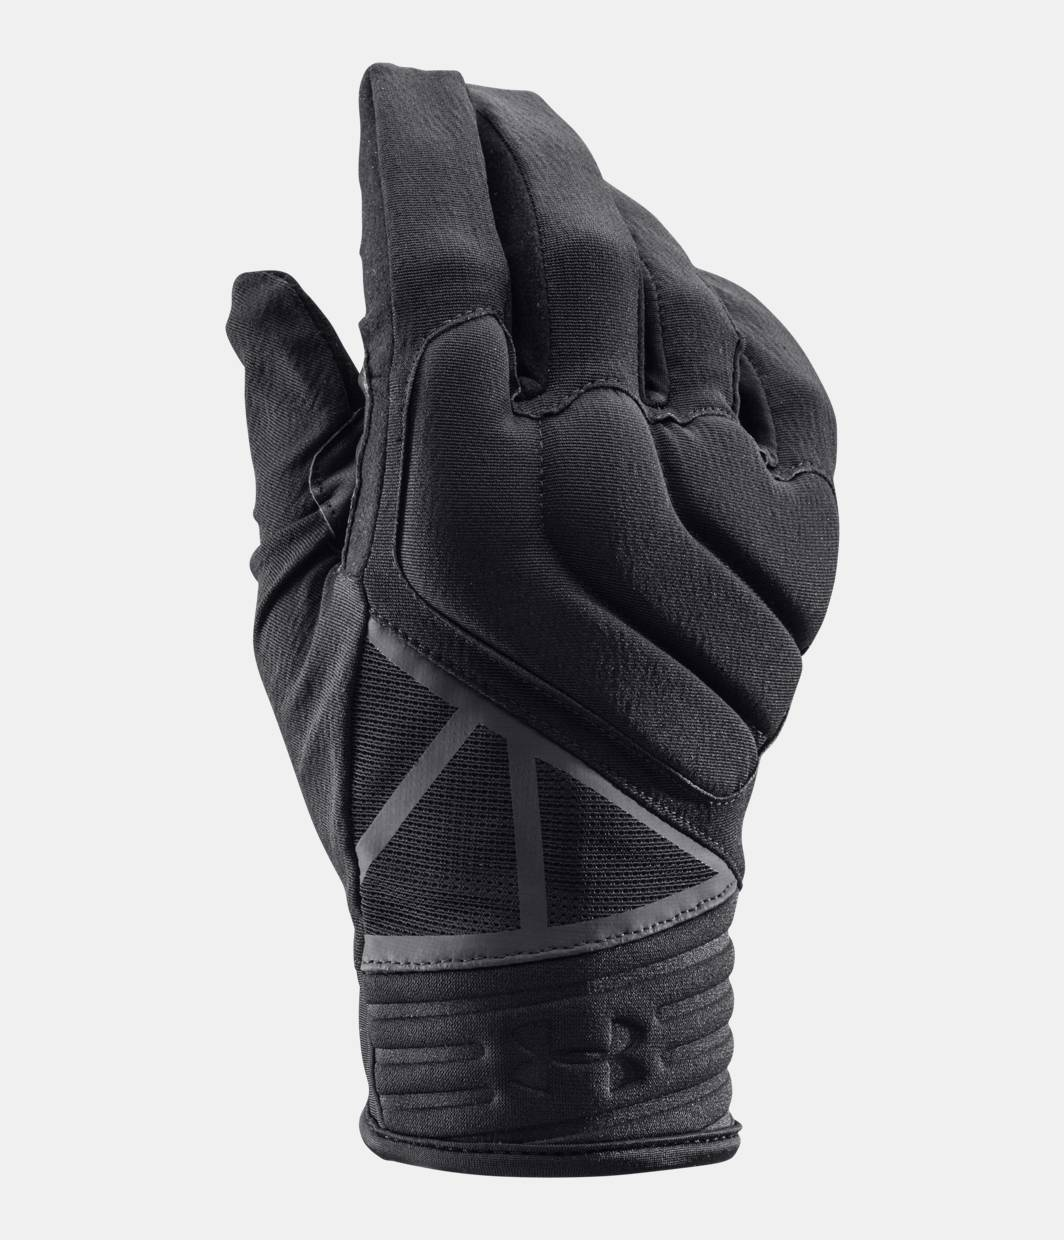 Under armour leather work gloves - Men S Ua Tactical Duty Gloves Black Zoomed Image